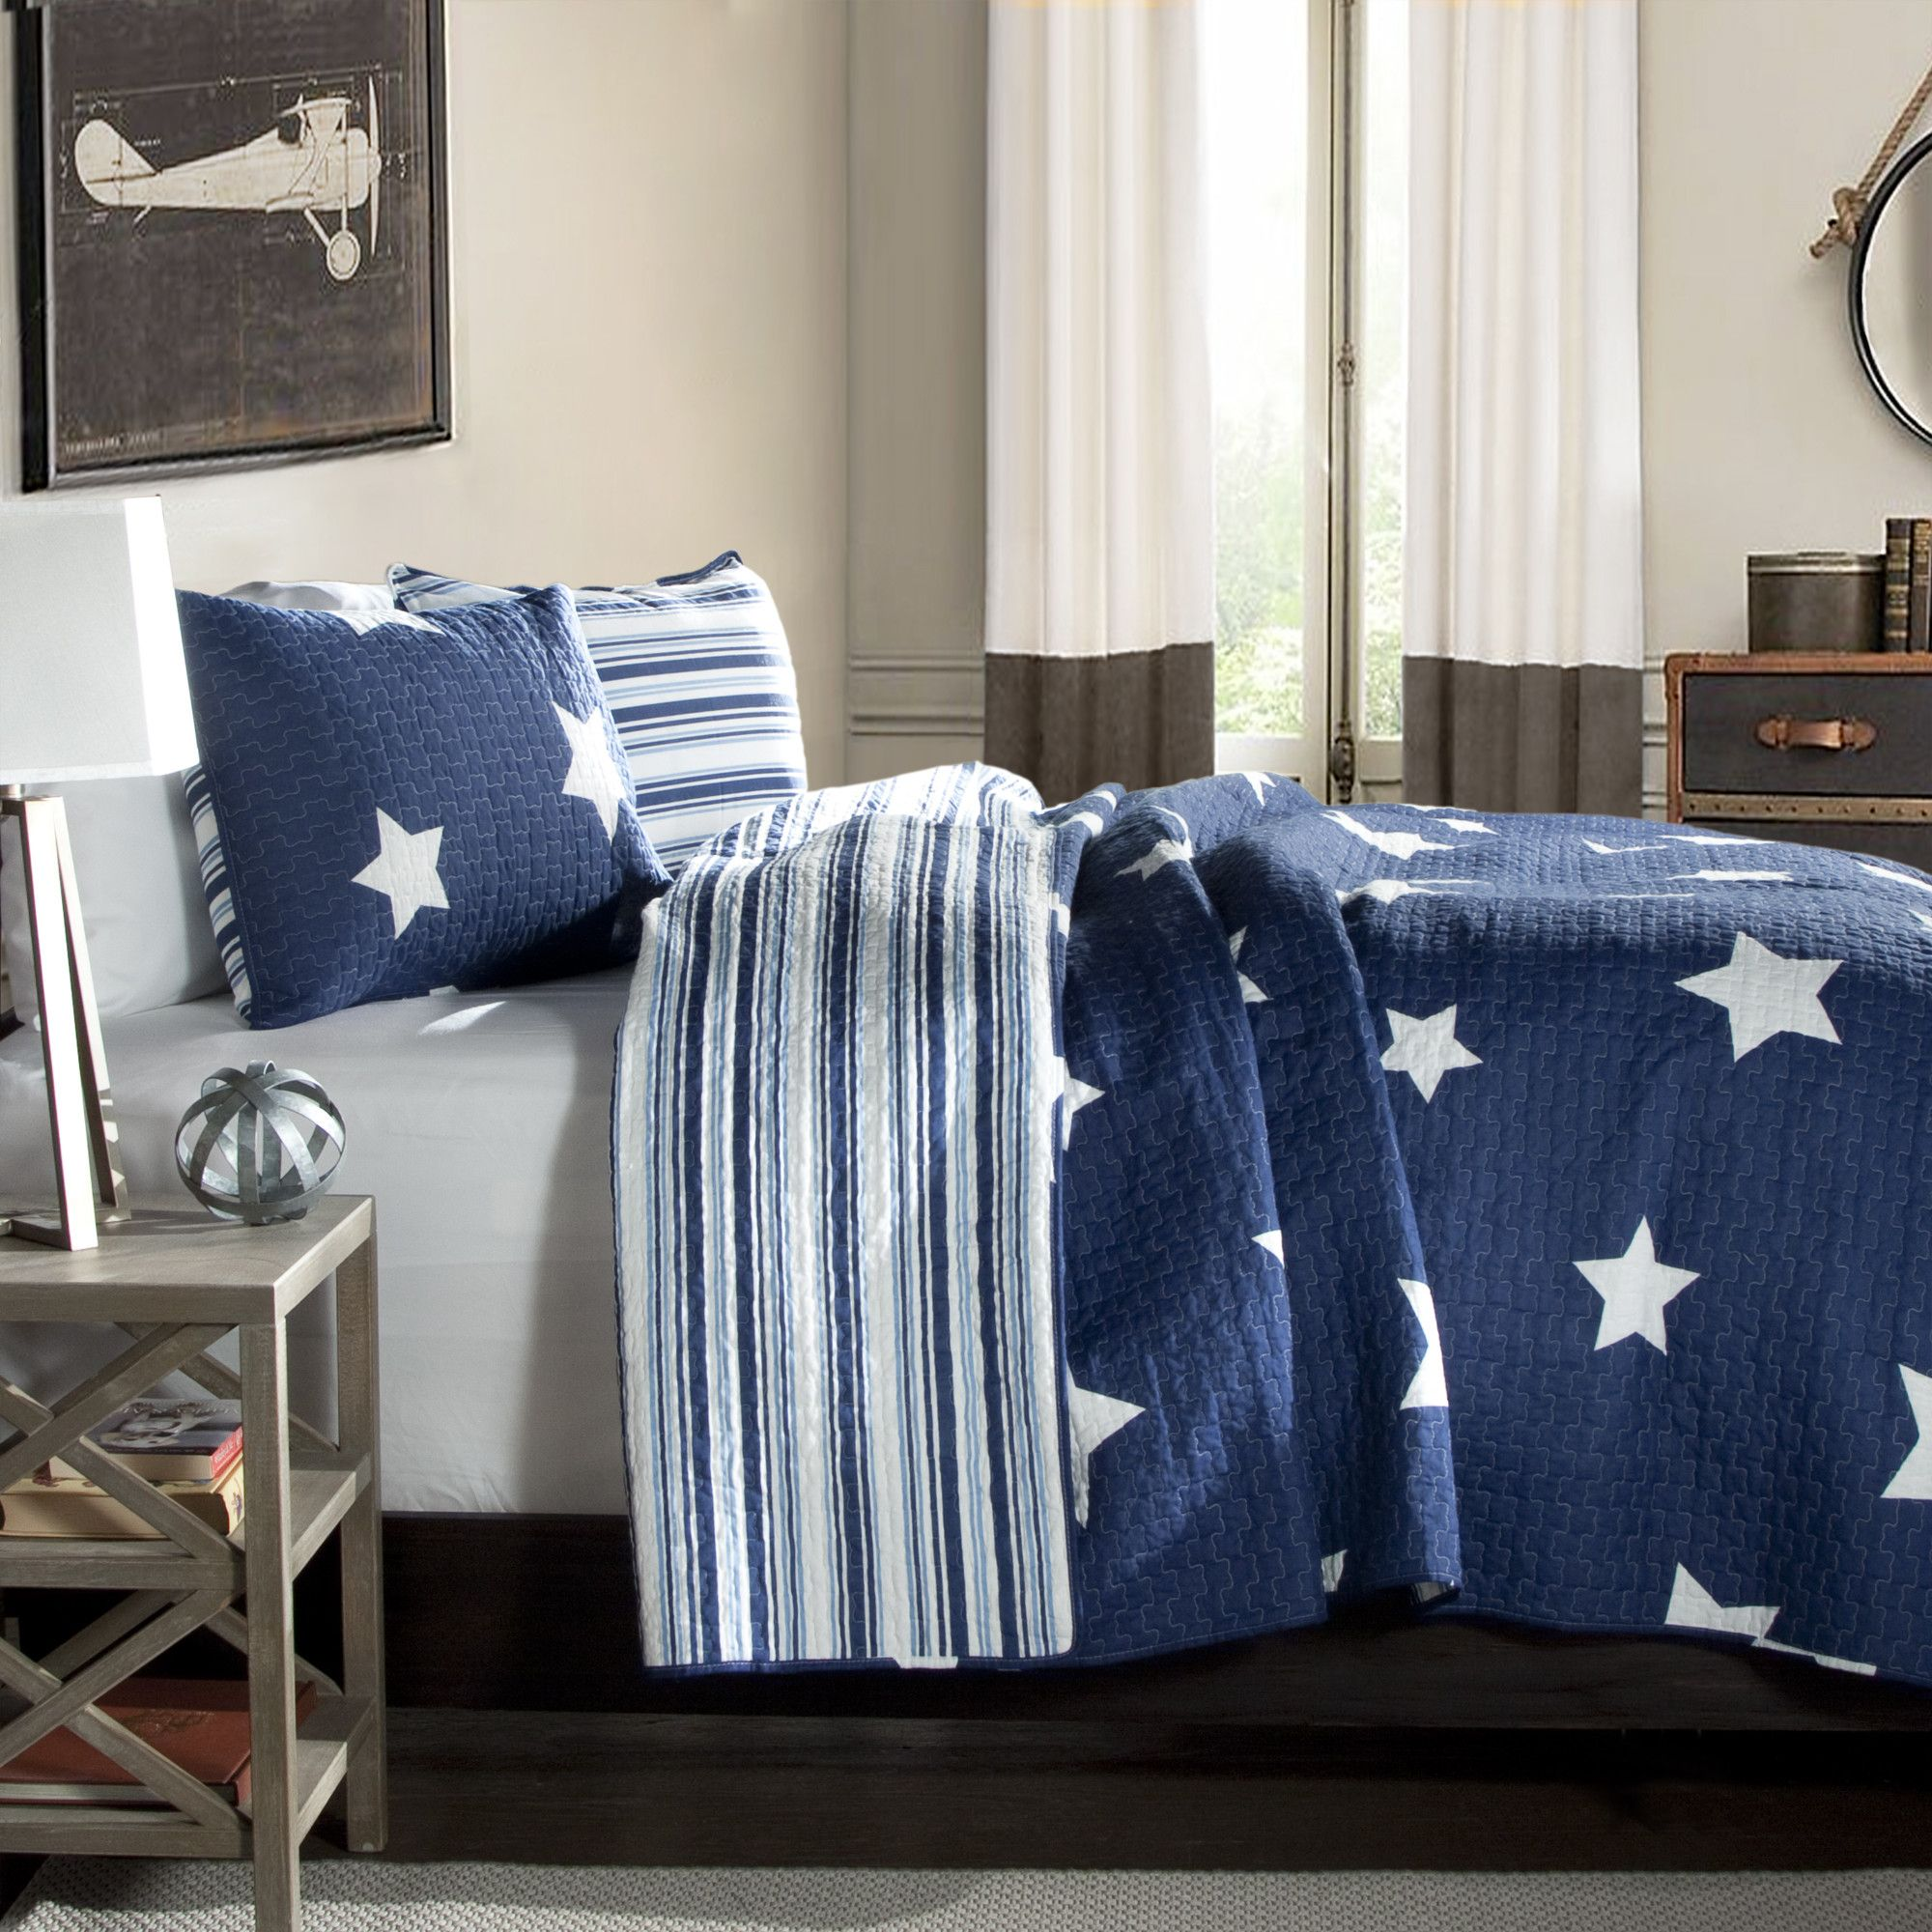 boys duvets covers quilt canada or crib cushion setsing sets size pictures boy room white bedding quilts king comforter outstanding duvet red sham online the pillow cover best blue of sheets for and navy queen doona comforters usa set linen full twin single with designs beddings archaicawful